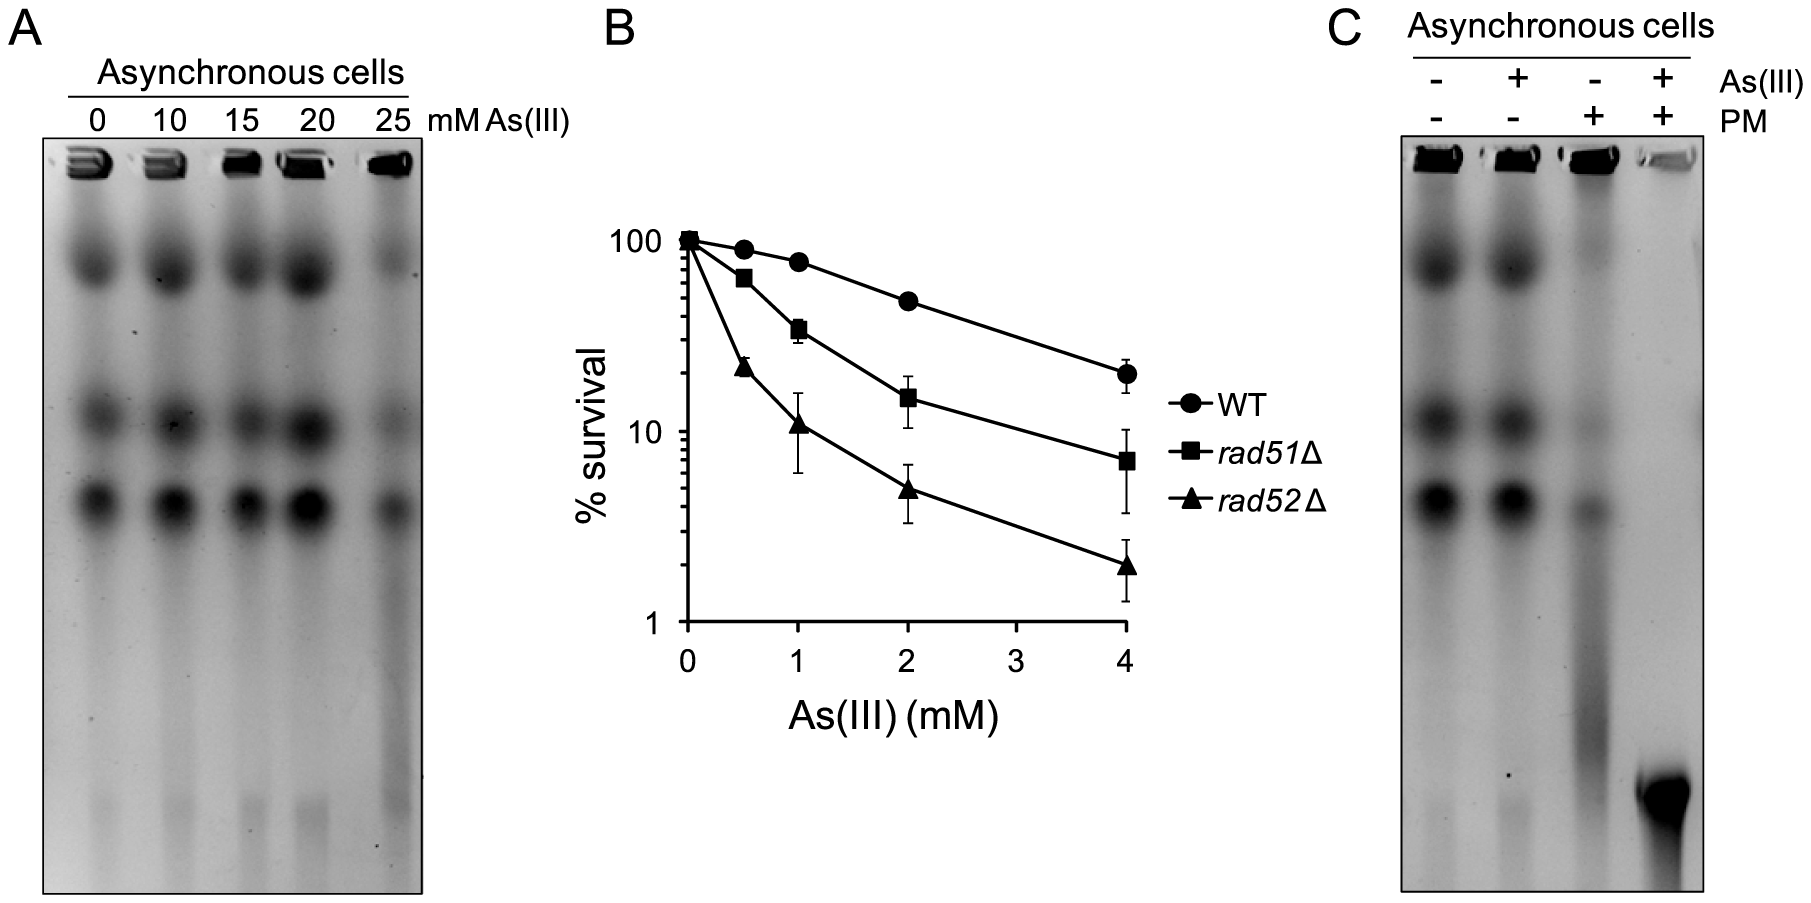 DSB induction by As(III) in <i>Schizosaccharomyces pombe</i> and the role of HR in surviving As(III) treatment.